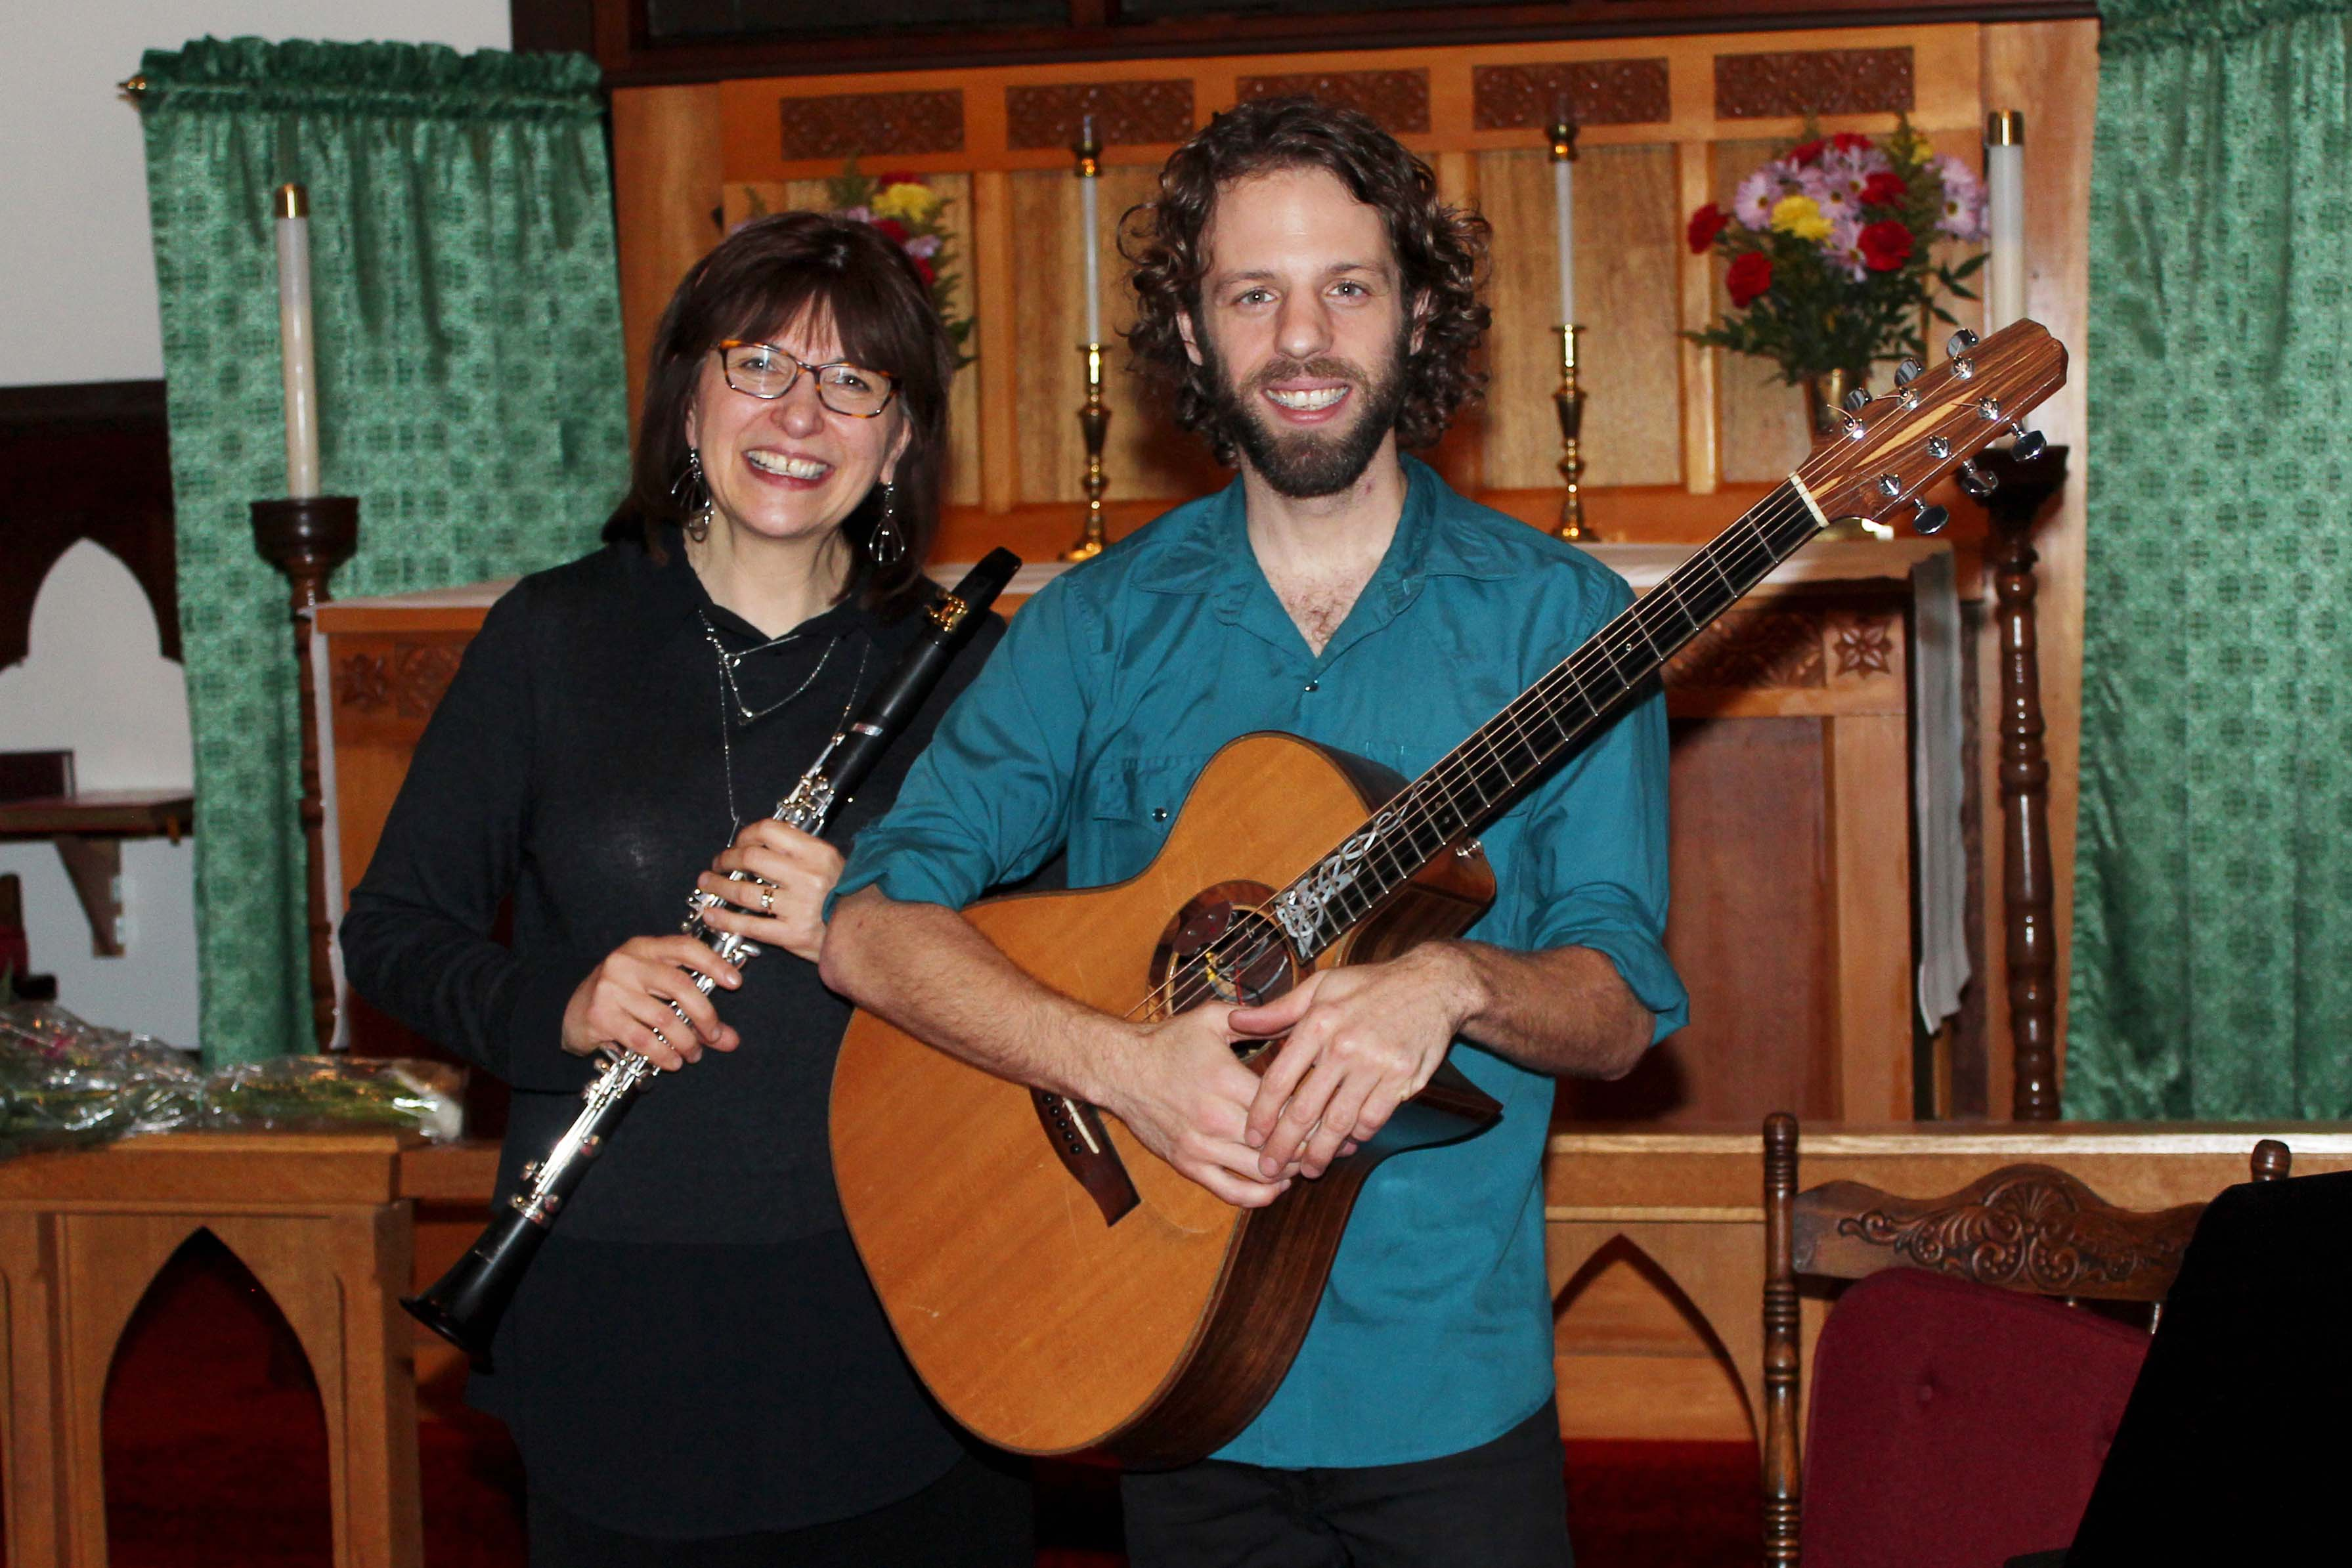 """The Klezmer Clarinet"" - Connie Gitlin (clarinet) with guest Adam Dobres (guitar), November 13, 2016"